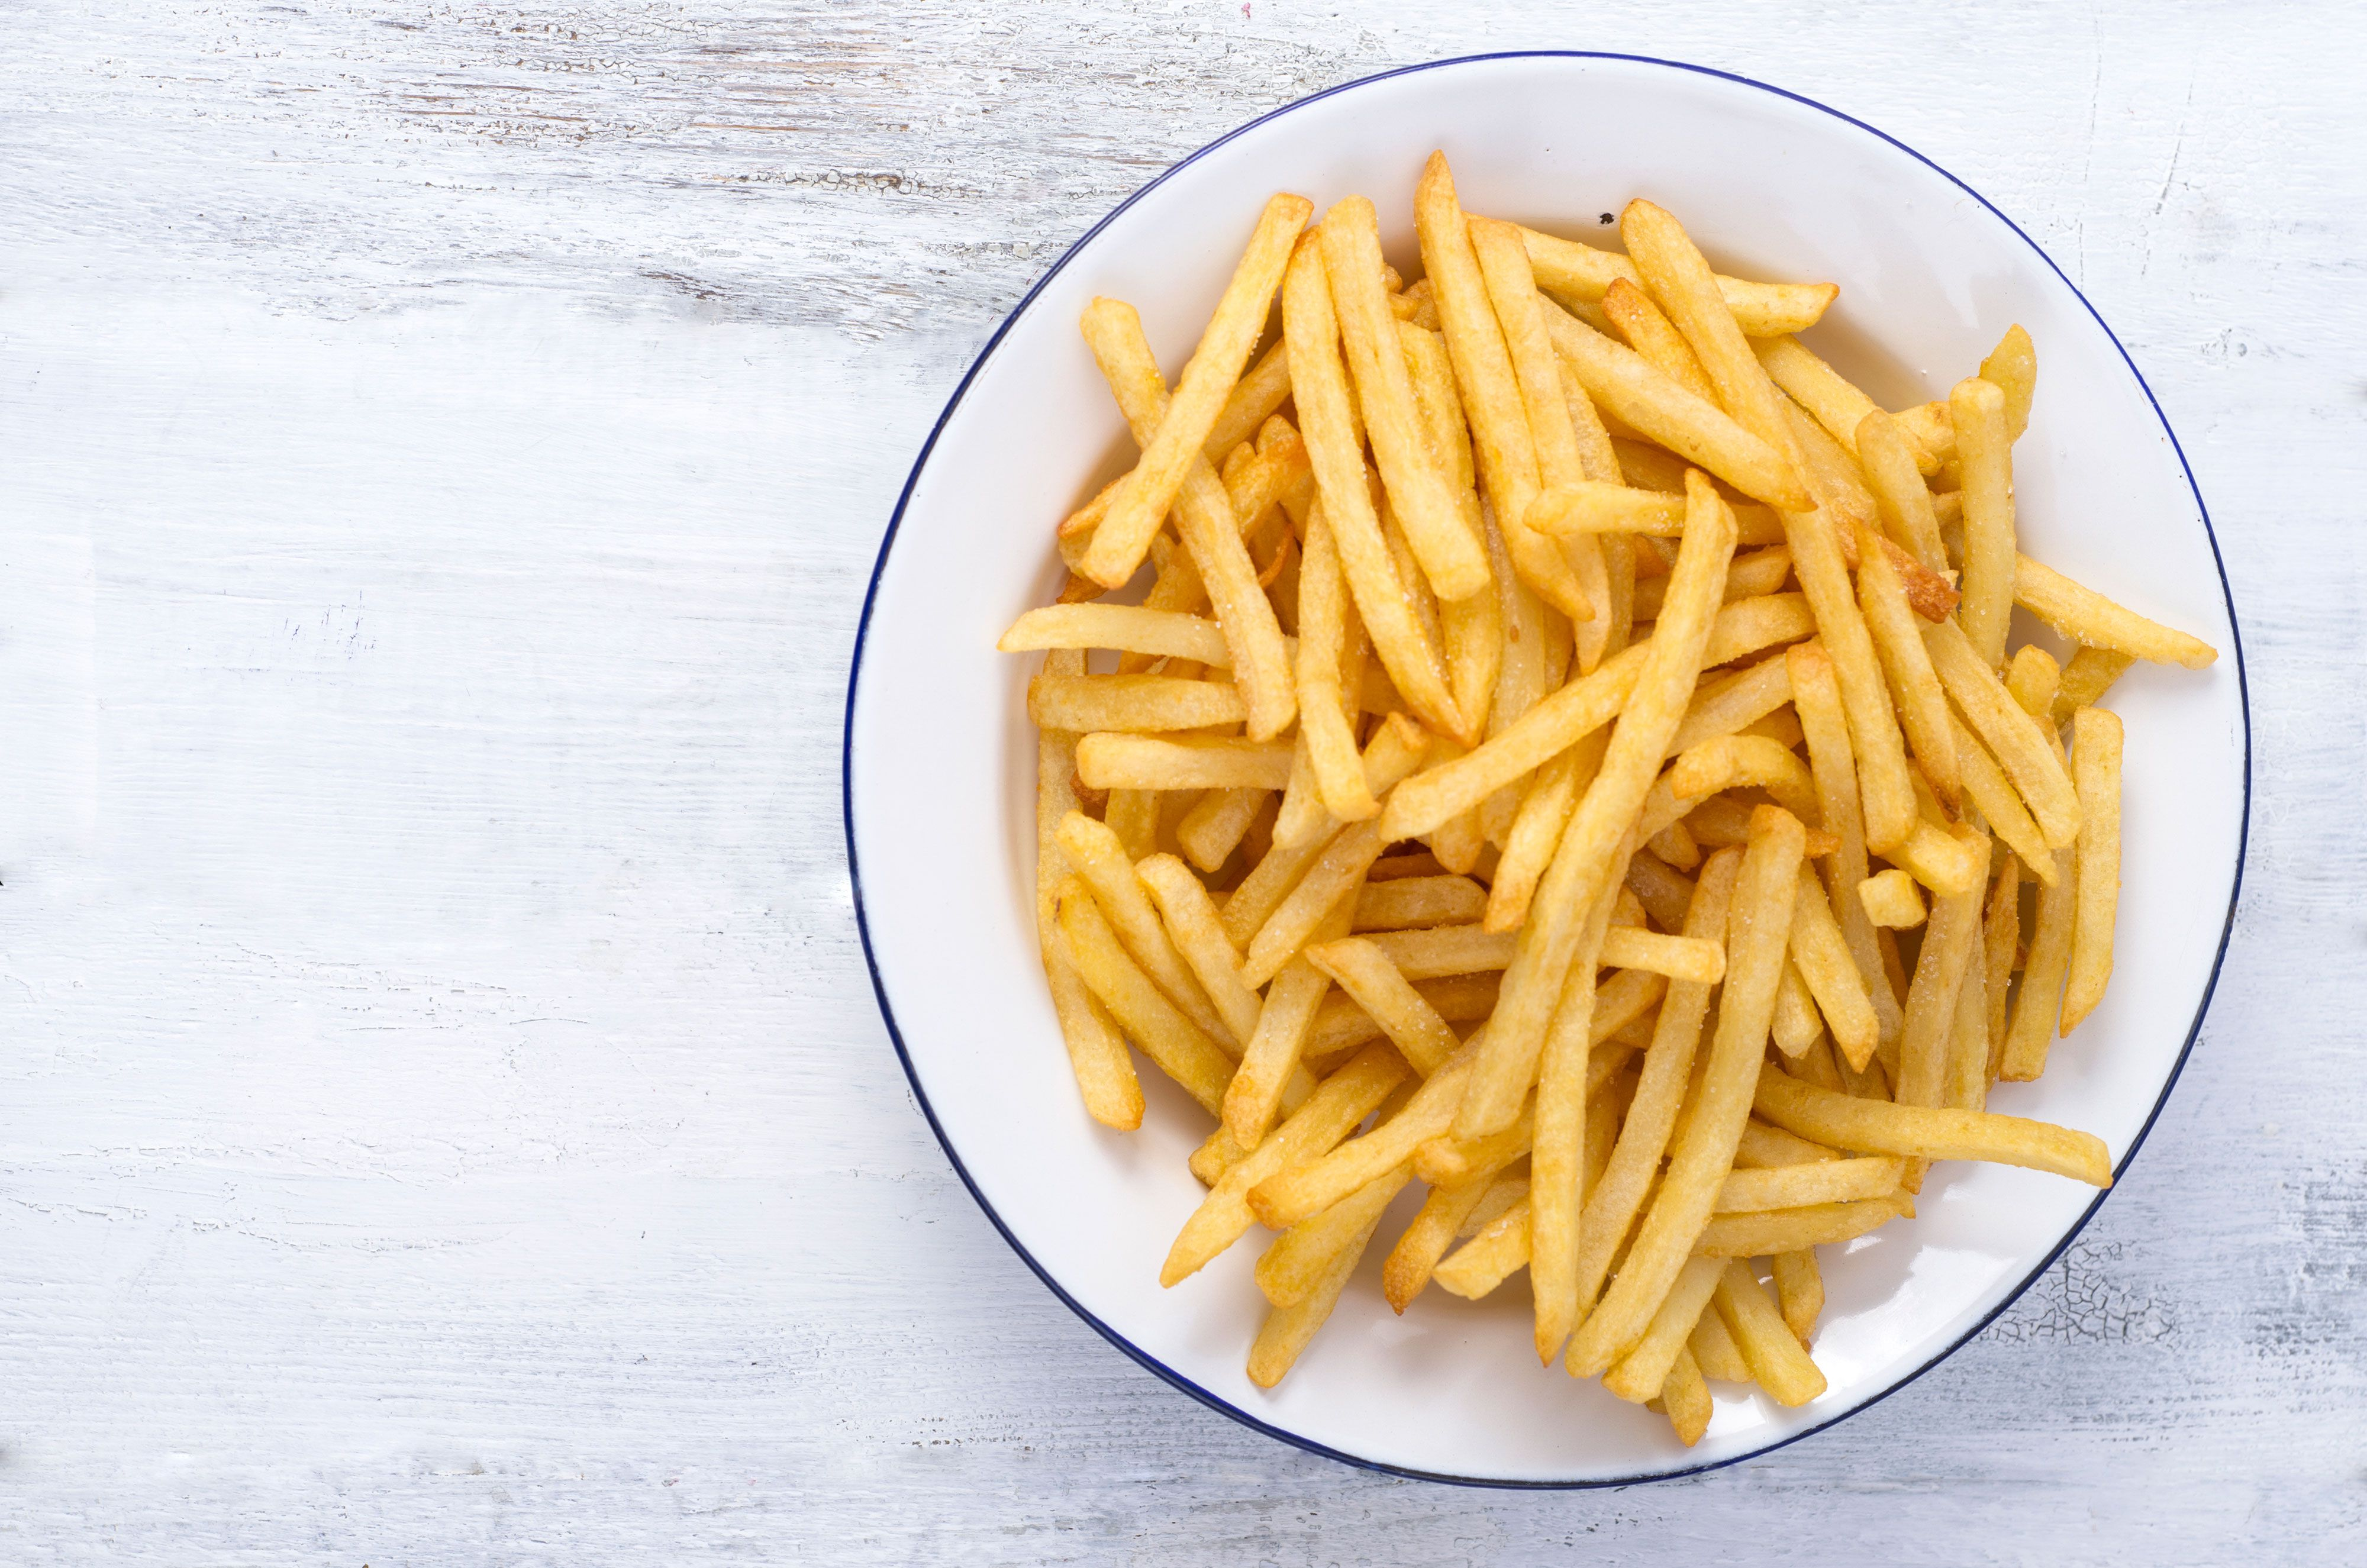 Make your own McDonalds French fries